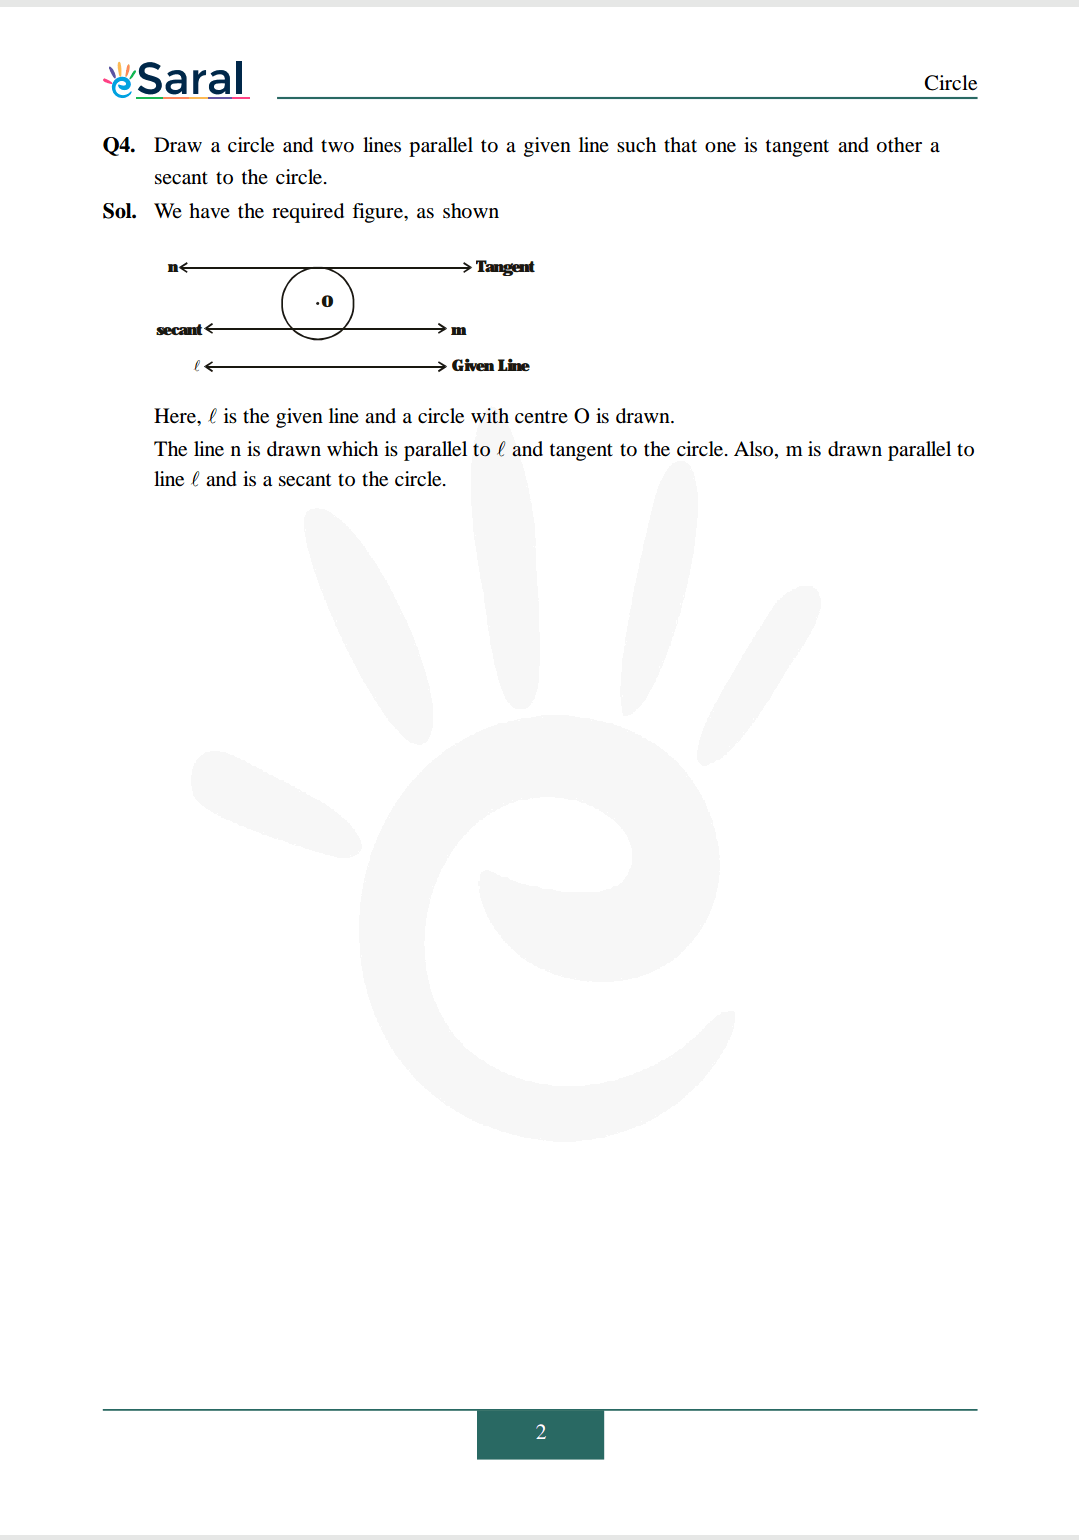 Class 10 Maths Chapter 10 exercise 10.1 solutions Image 2